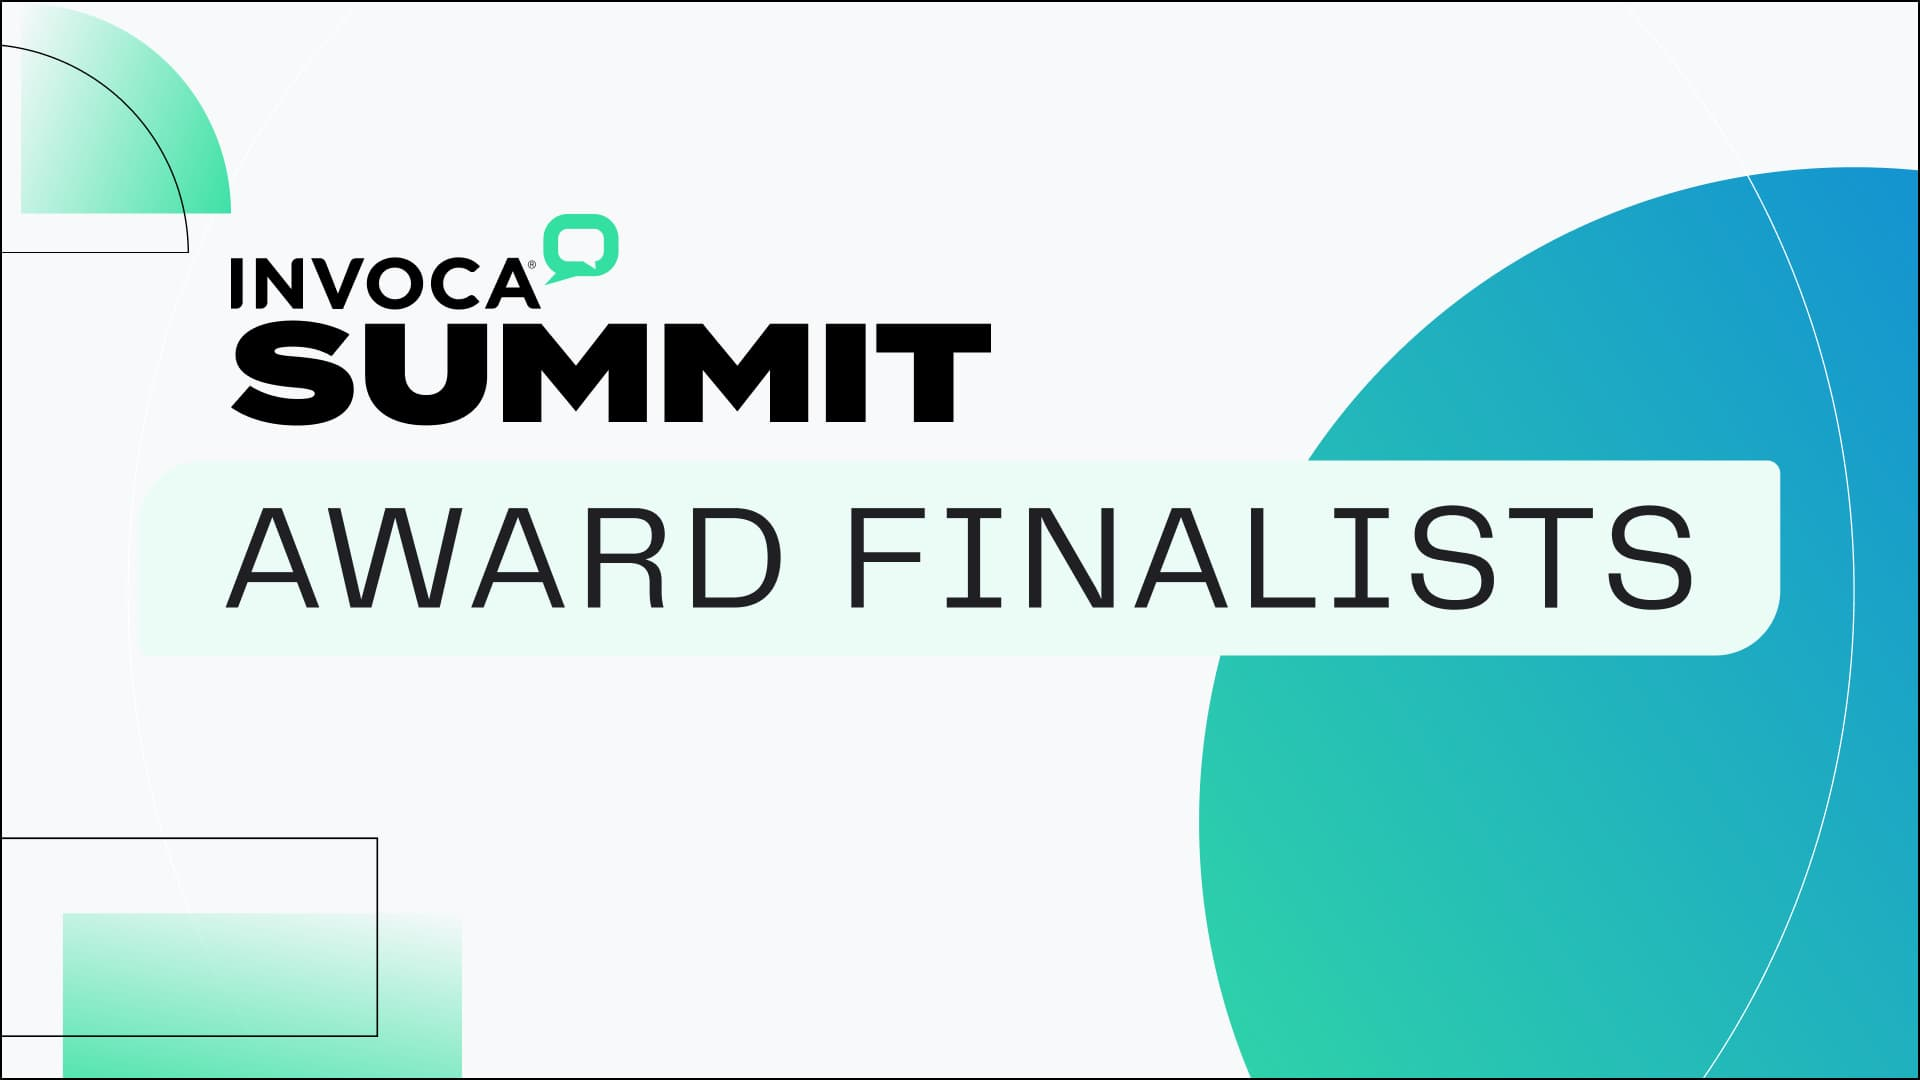 Announcing The 2020 Invoca Summit Awards Finalists!